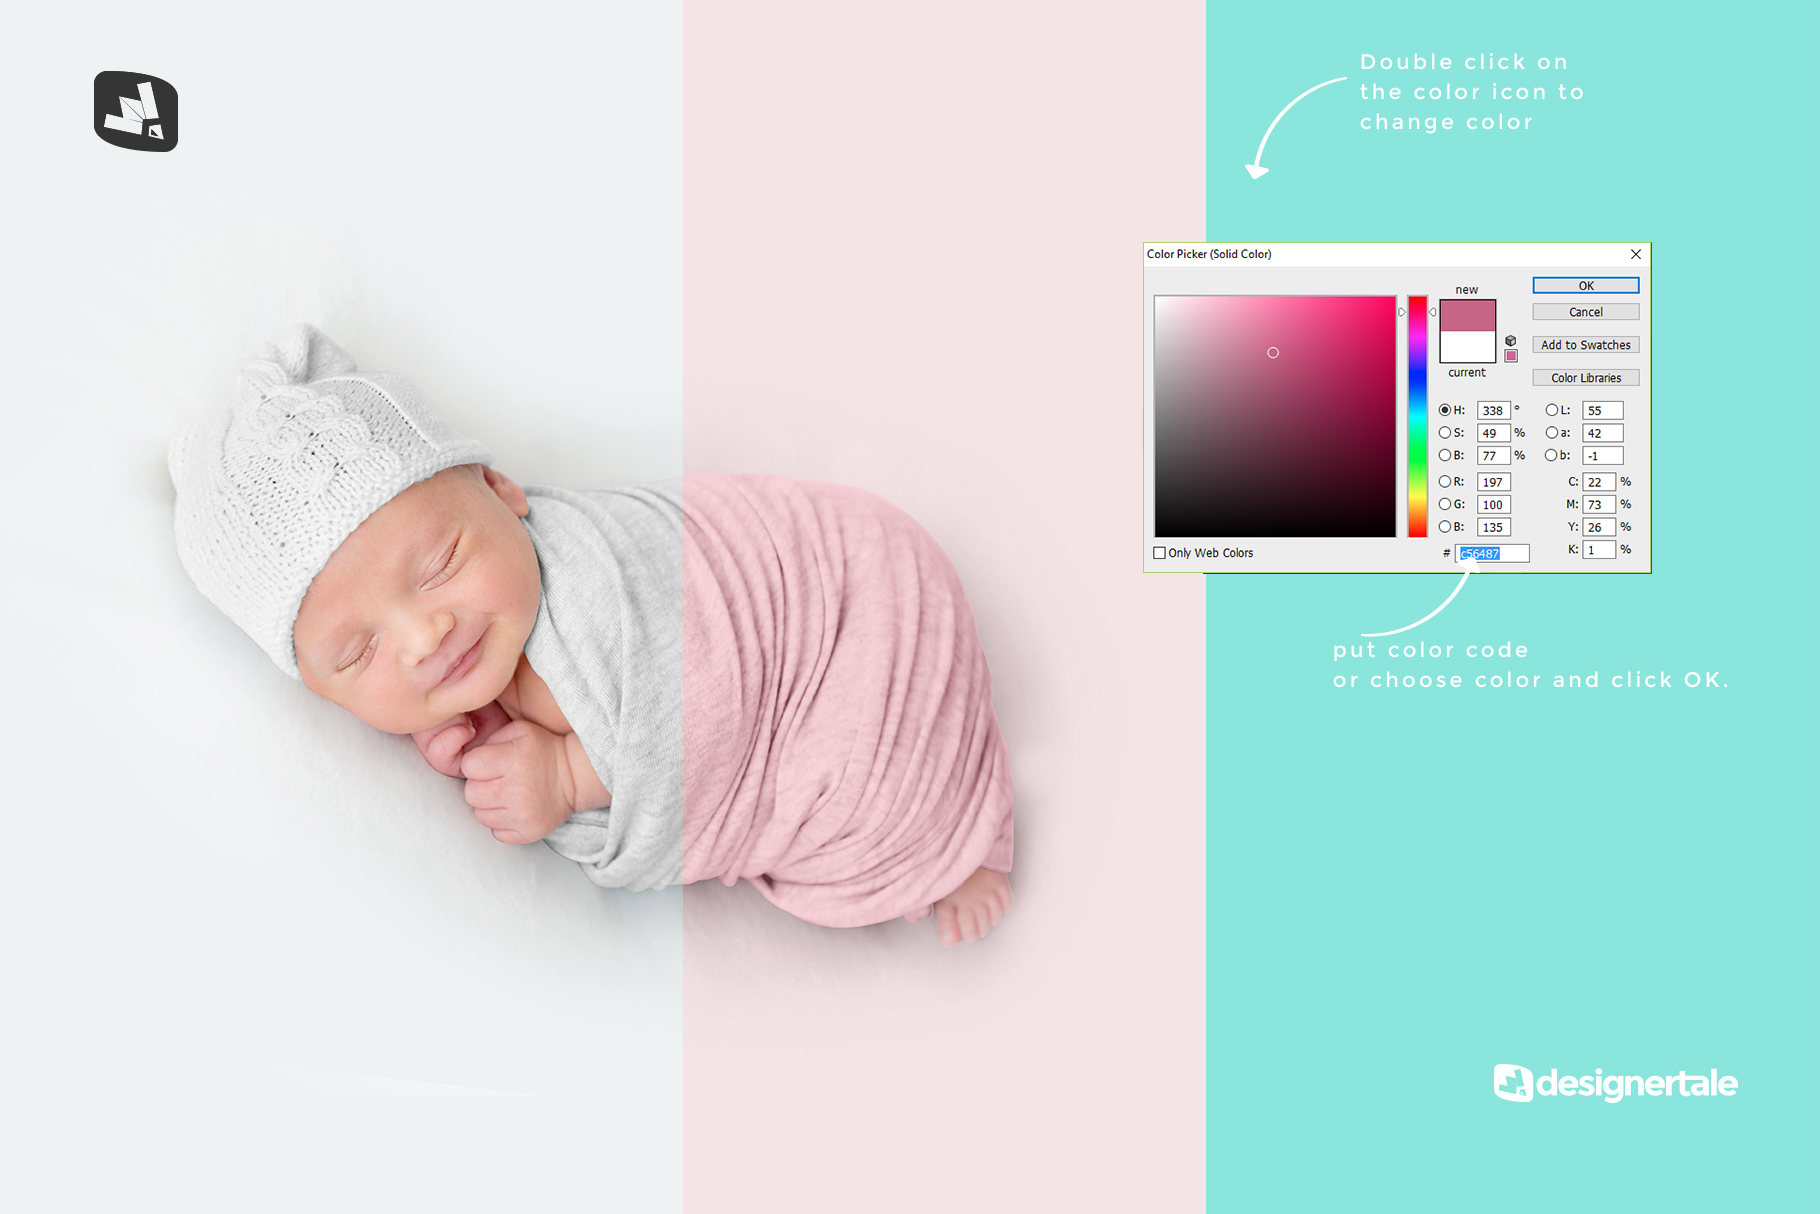 how to change color of the newborn swaddle blanket mockup